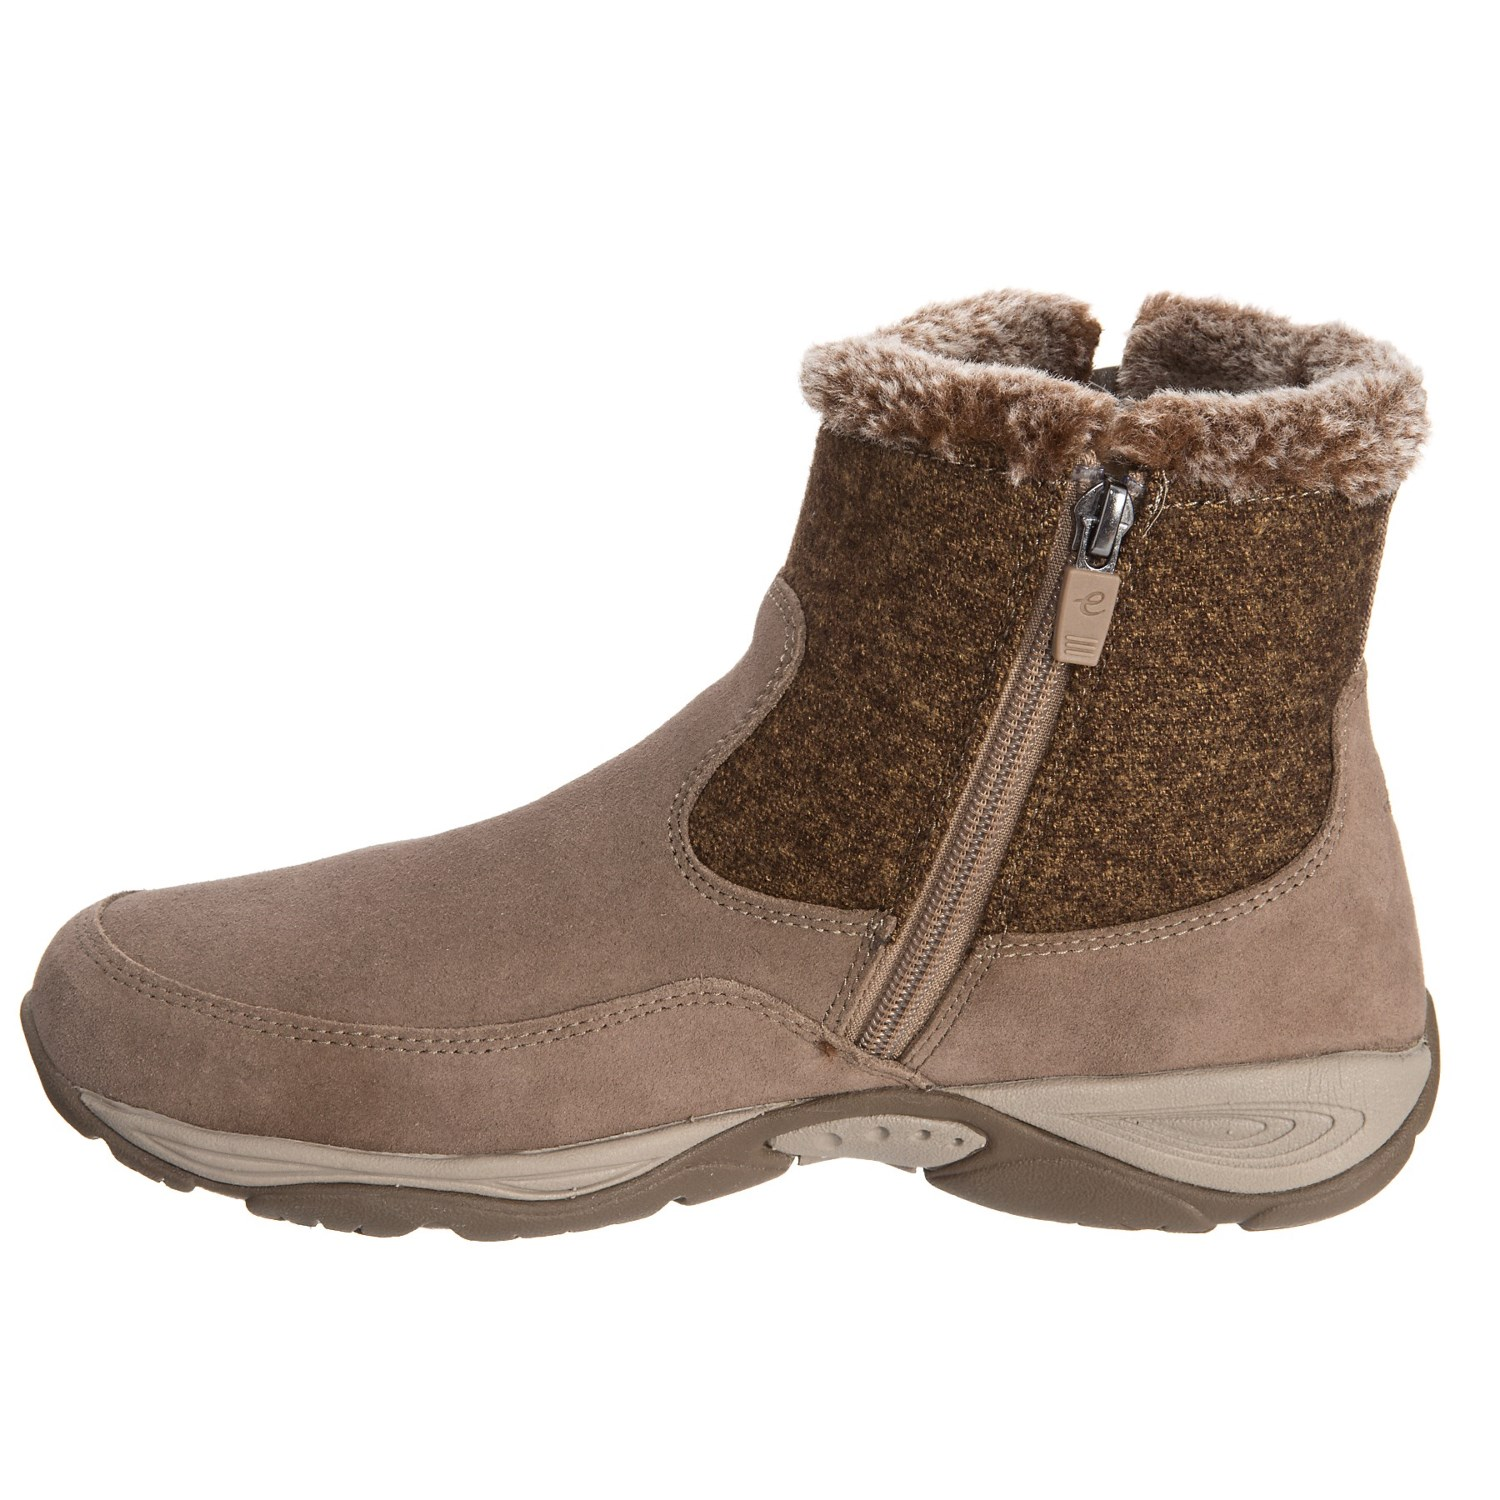 Easy Spirit Excel Boots (For Women) - Save 28% 14f645b6923e